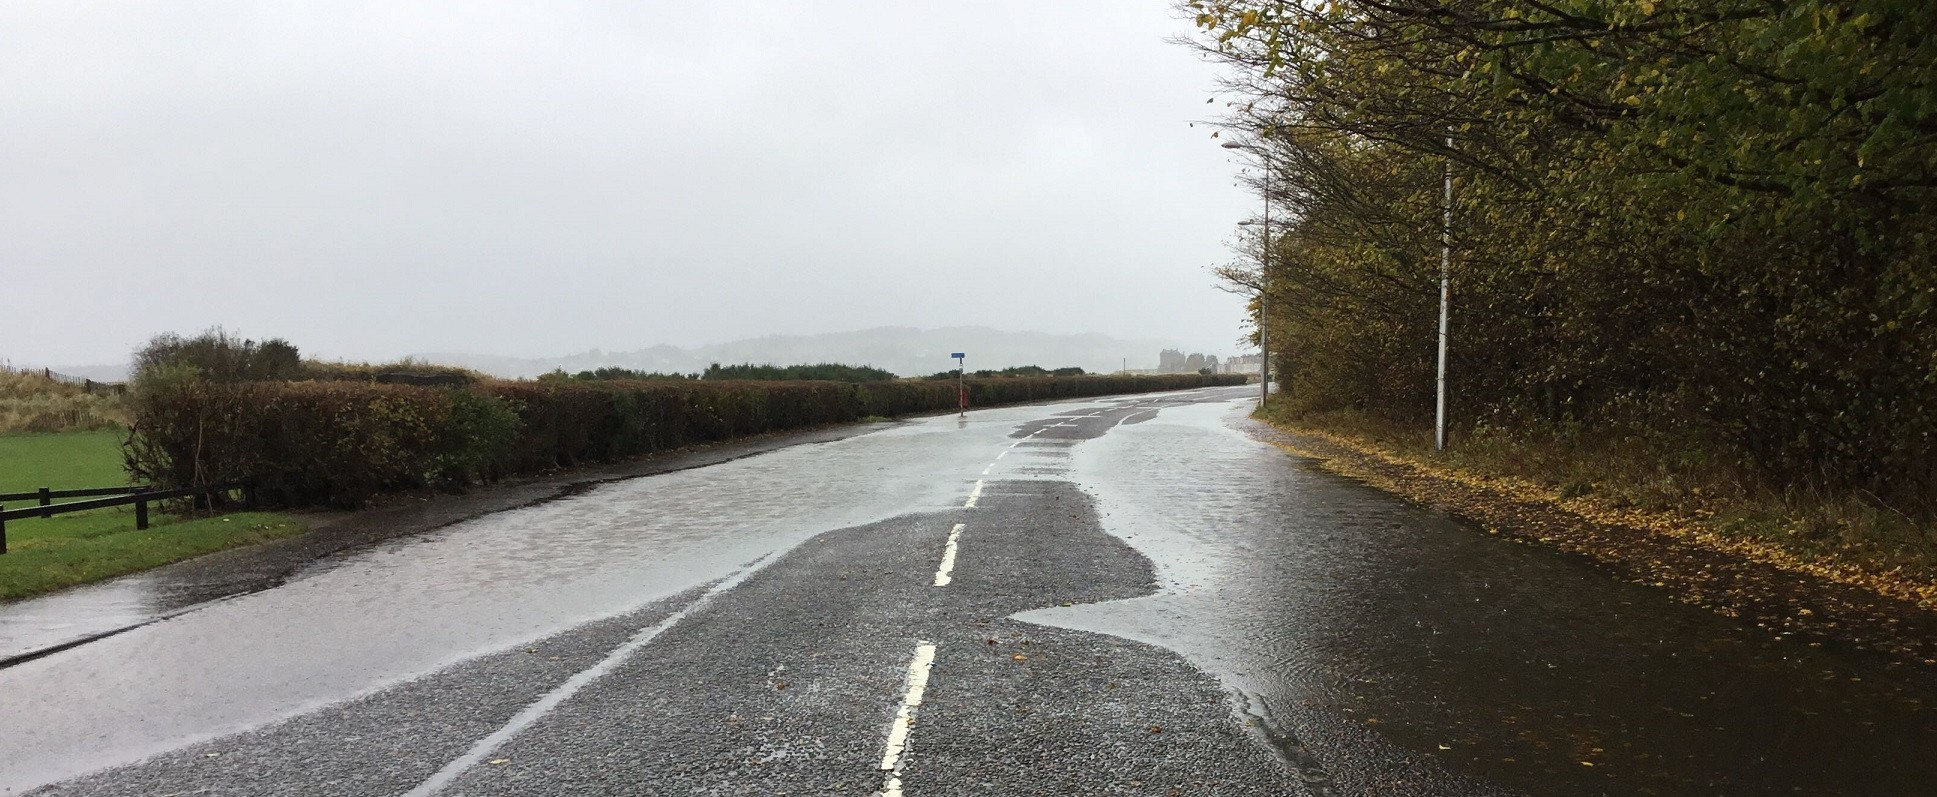 The Esplanade has had repeated issues with flooding.